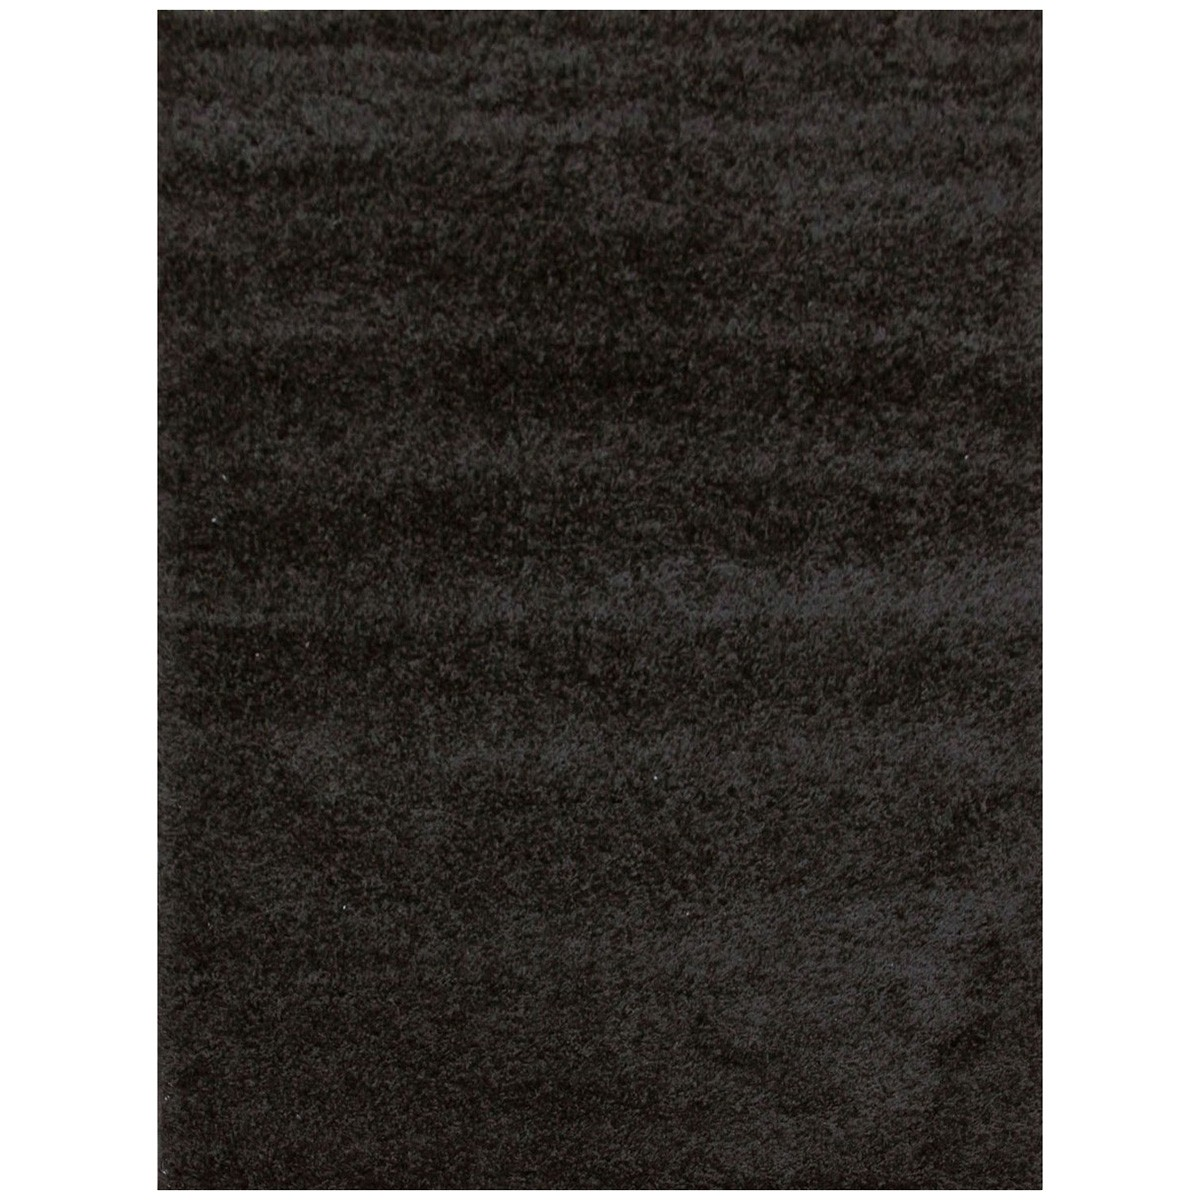 Notes Plain Colour Turkish Made Shag Rug, 230x160cm, Black